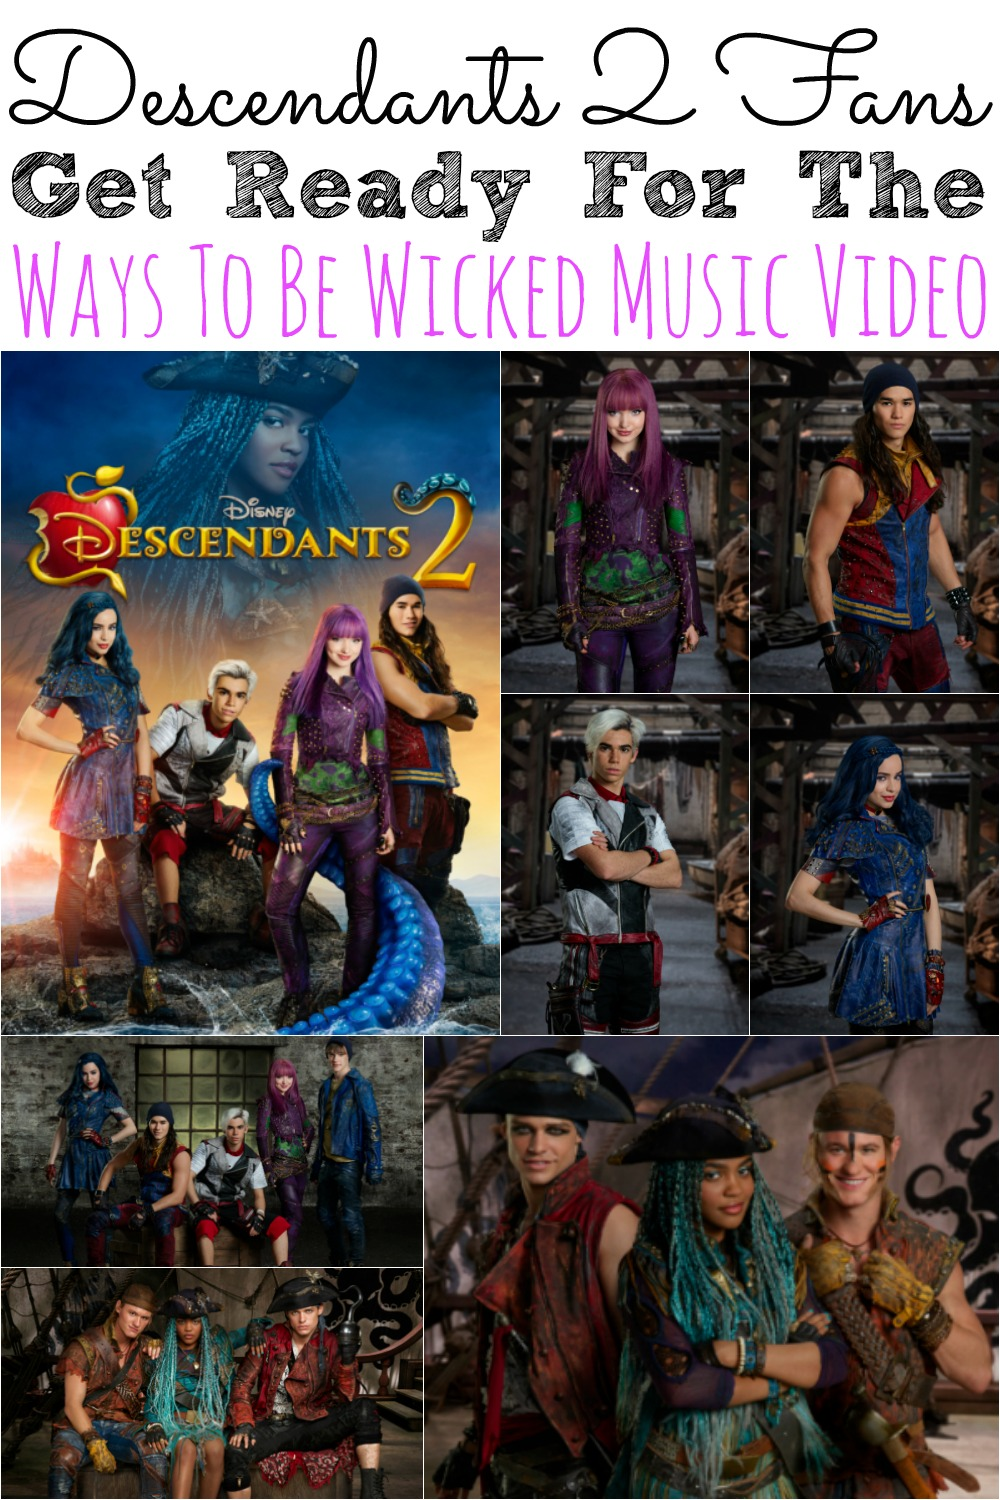 Descendants 2 Fans Get Ready For Ways To Be Wicked Music Video